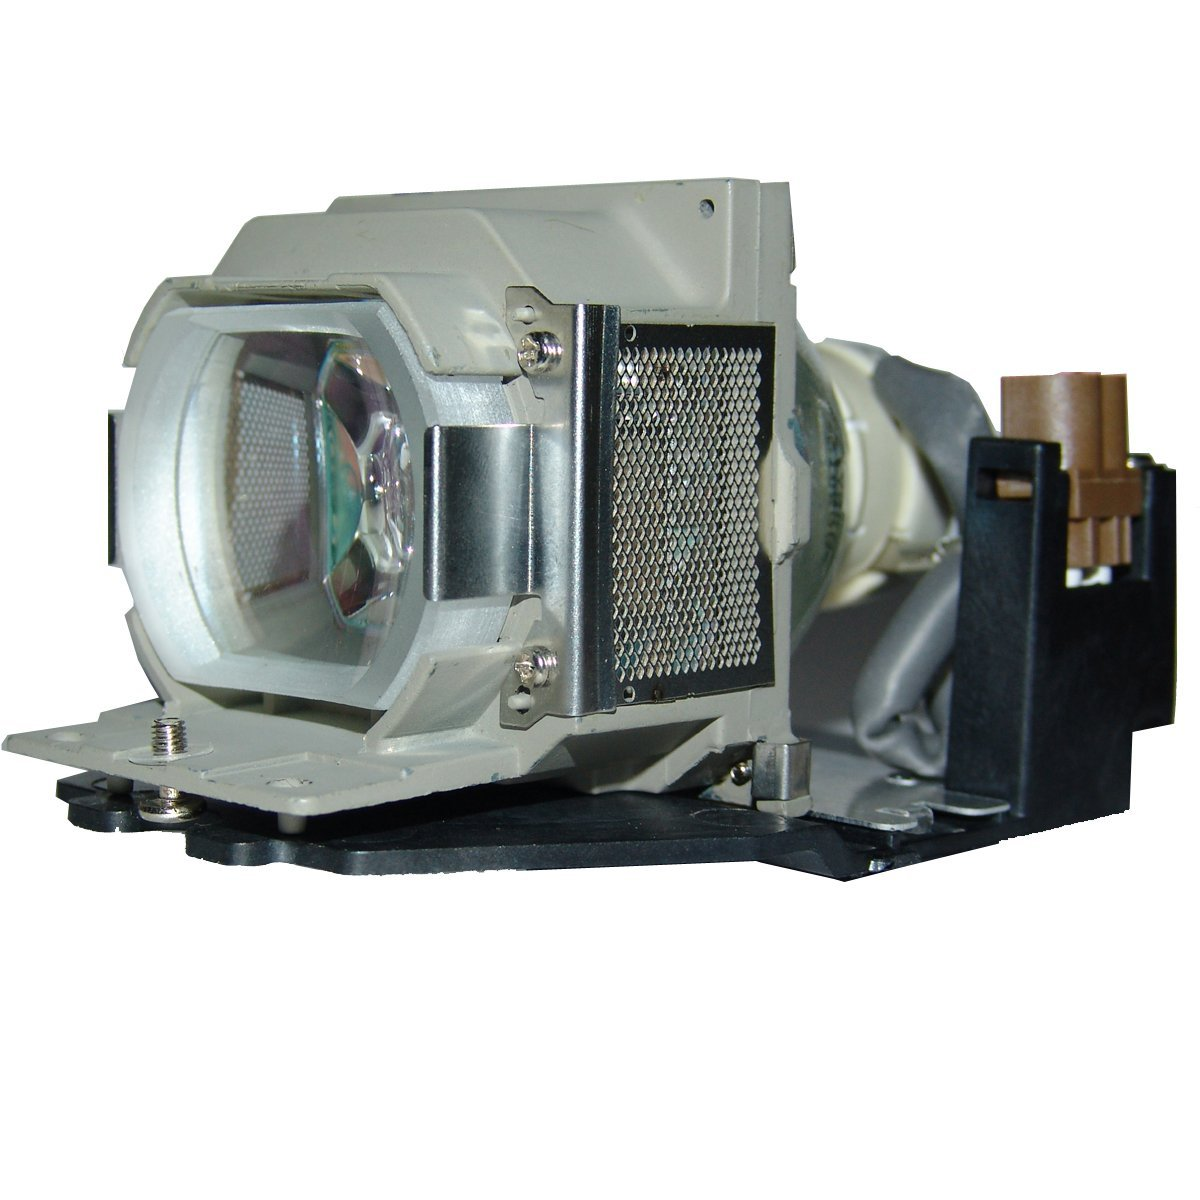 Lutema LMP-E191-P01 Sony LMP-E191 LCD/DLP Projector Lamp, Philips Inside